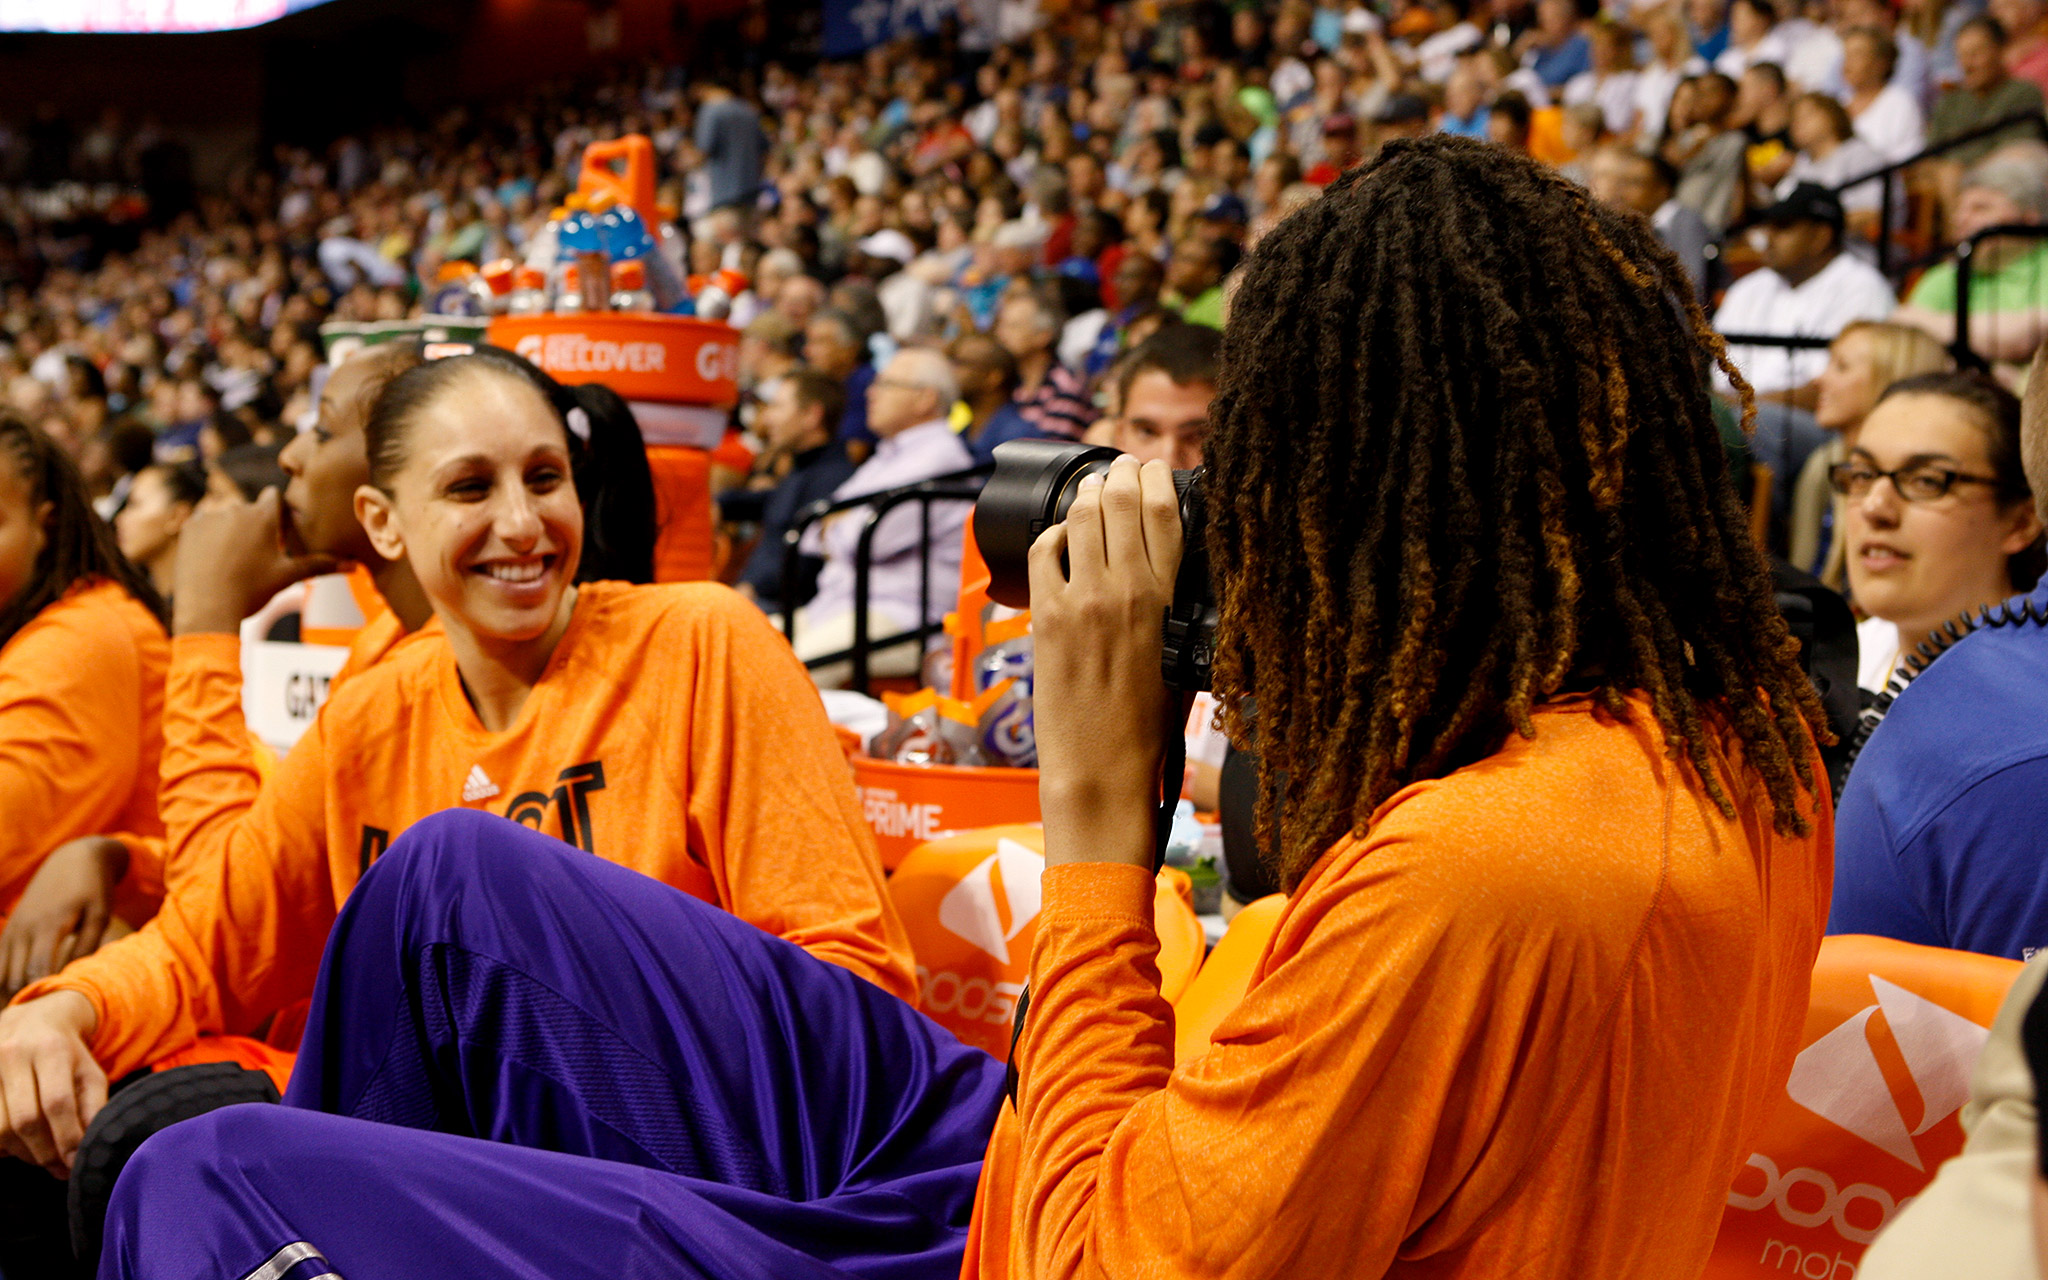 After sharing some light moments during the WNBA All-Star Game, Diana Taurasi and Brittney Griner are about to get serious as they try to win a third WNBA title for Phoenix.